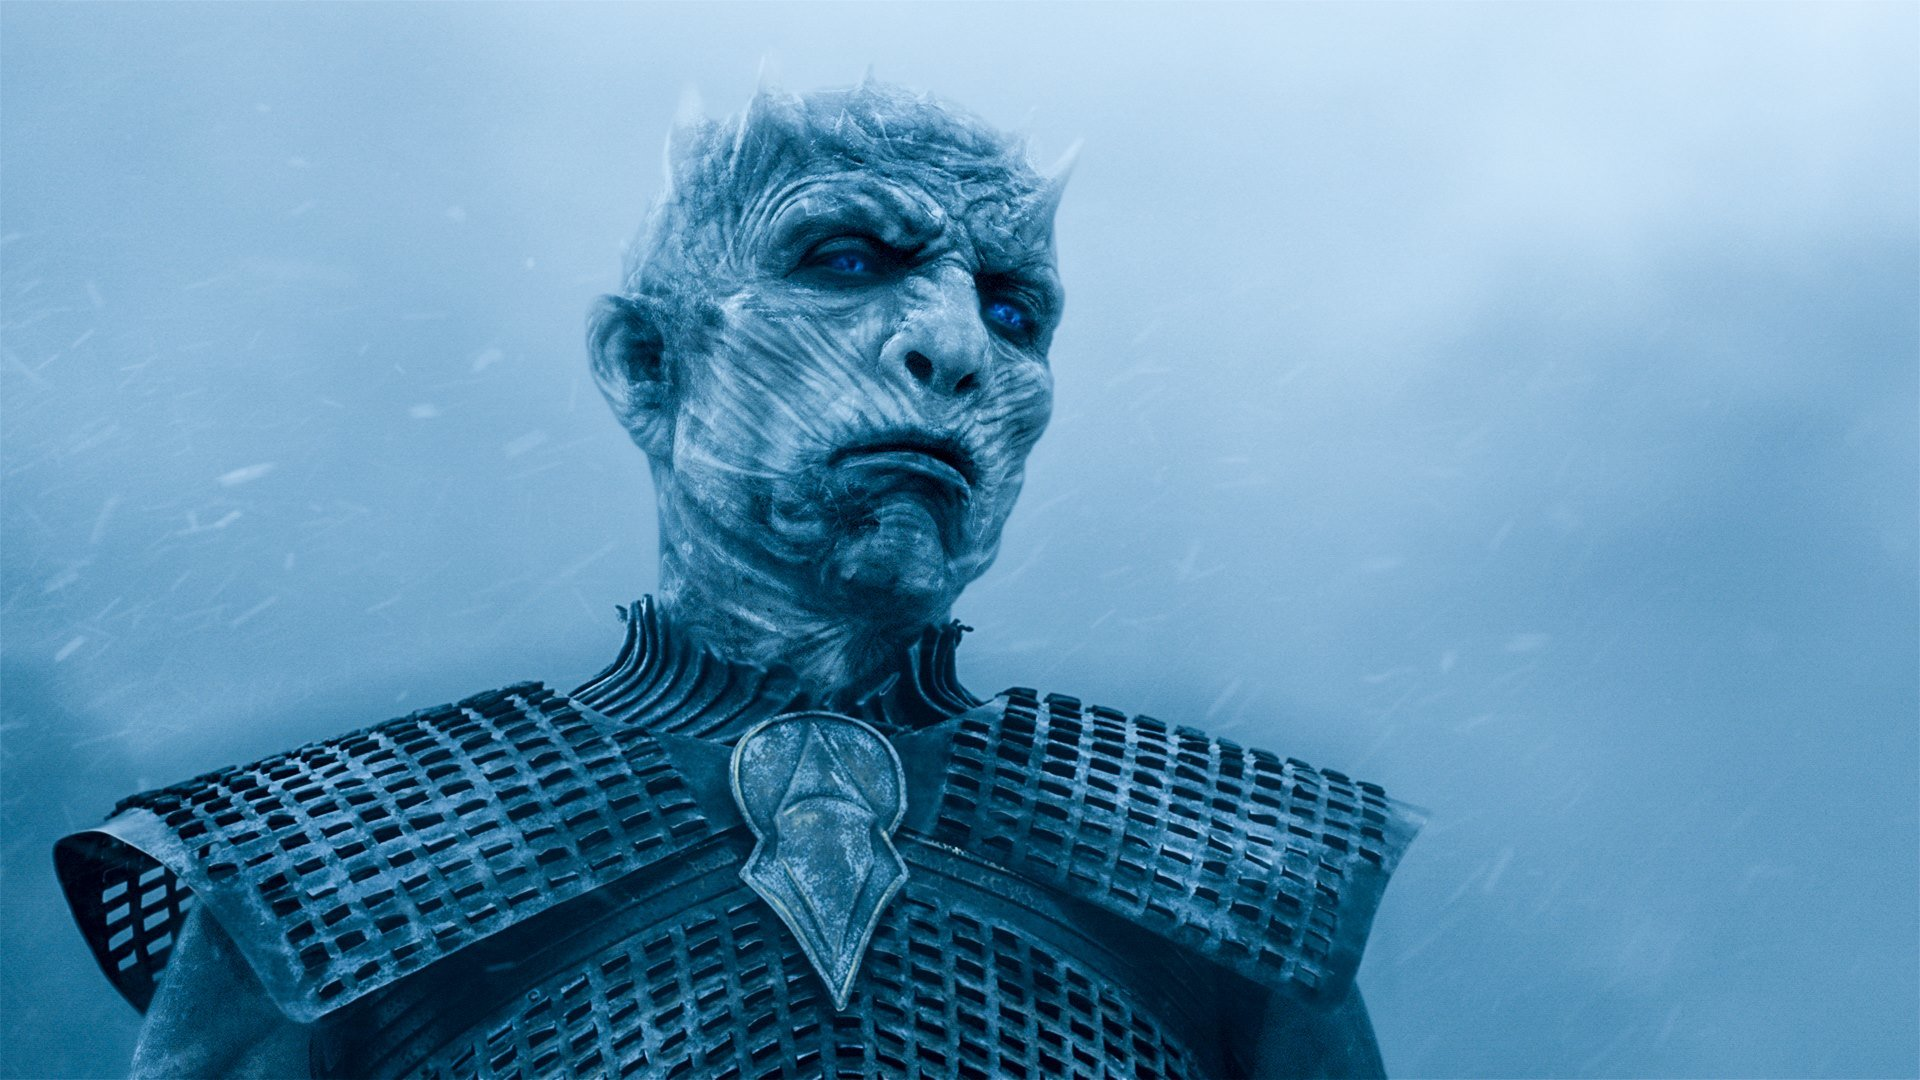 The Night King Agrees With You -